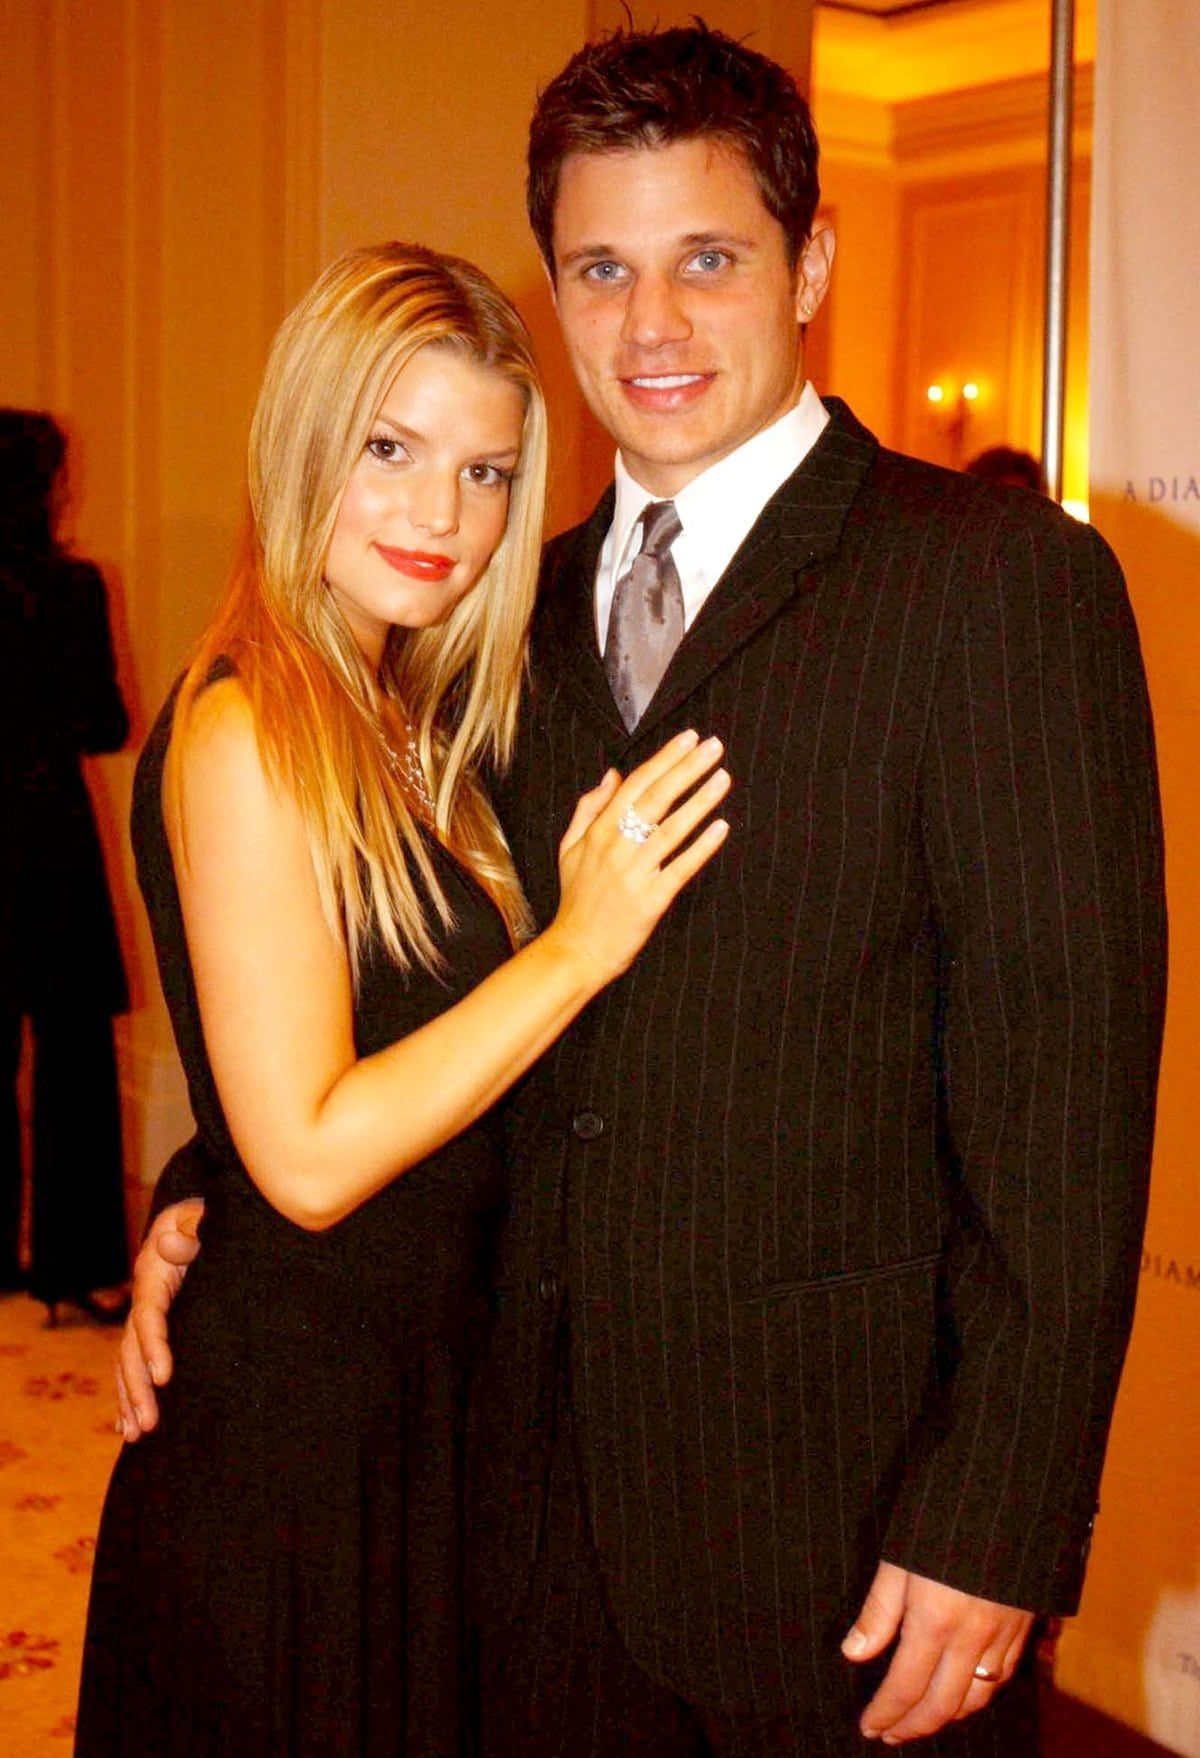 Jessica Simpson and Nick Lachey met at The Hollywood Christmas Parade in 1998